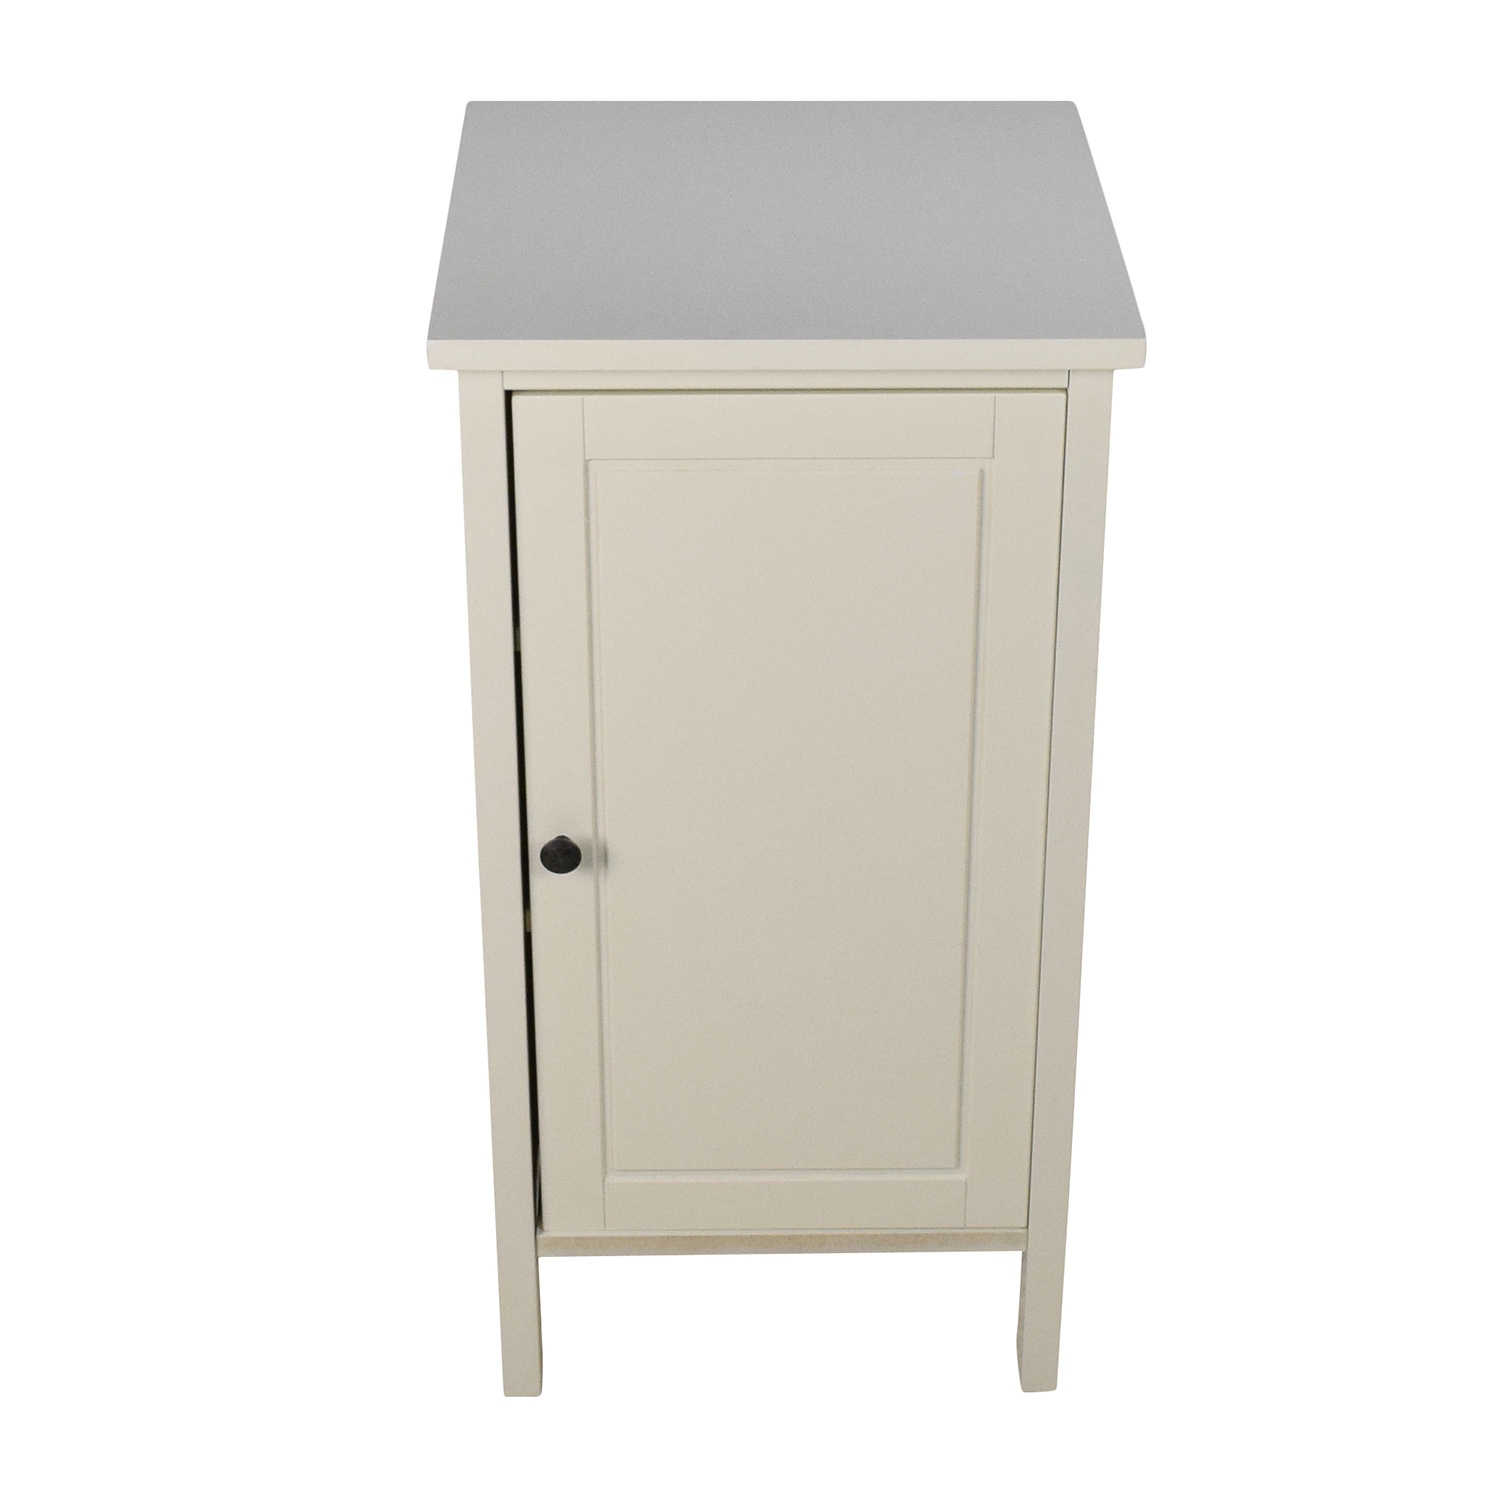 shop ikea ikea hemnes bedside table online - End Tables Ikea